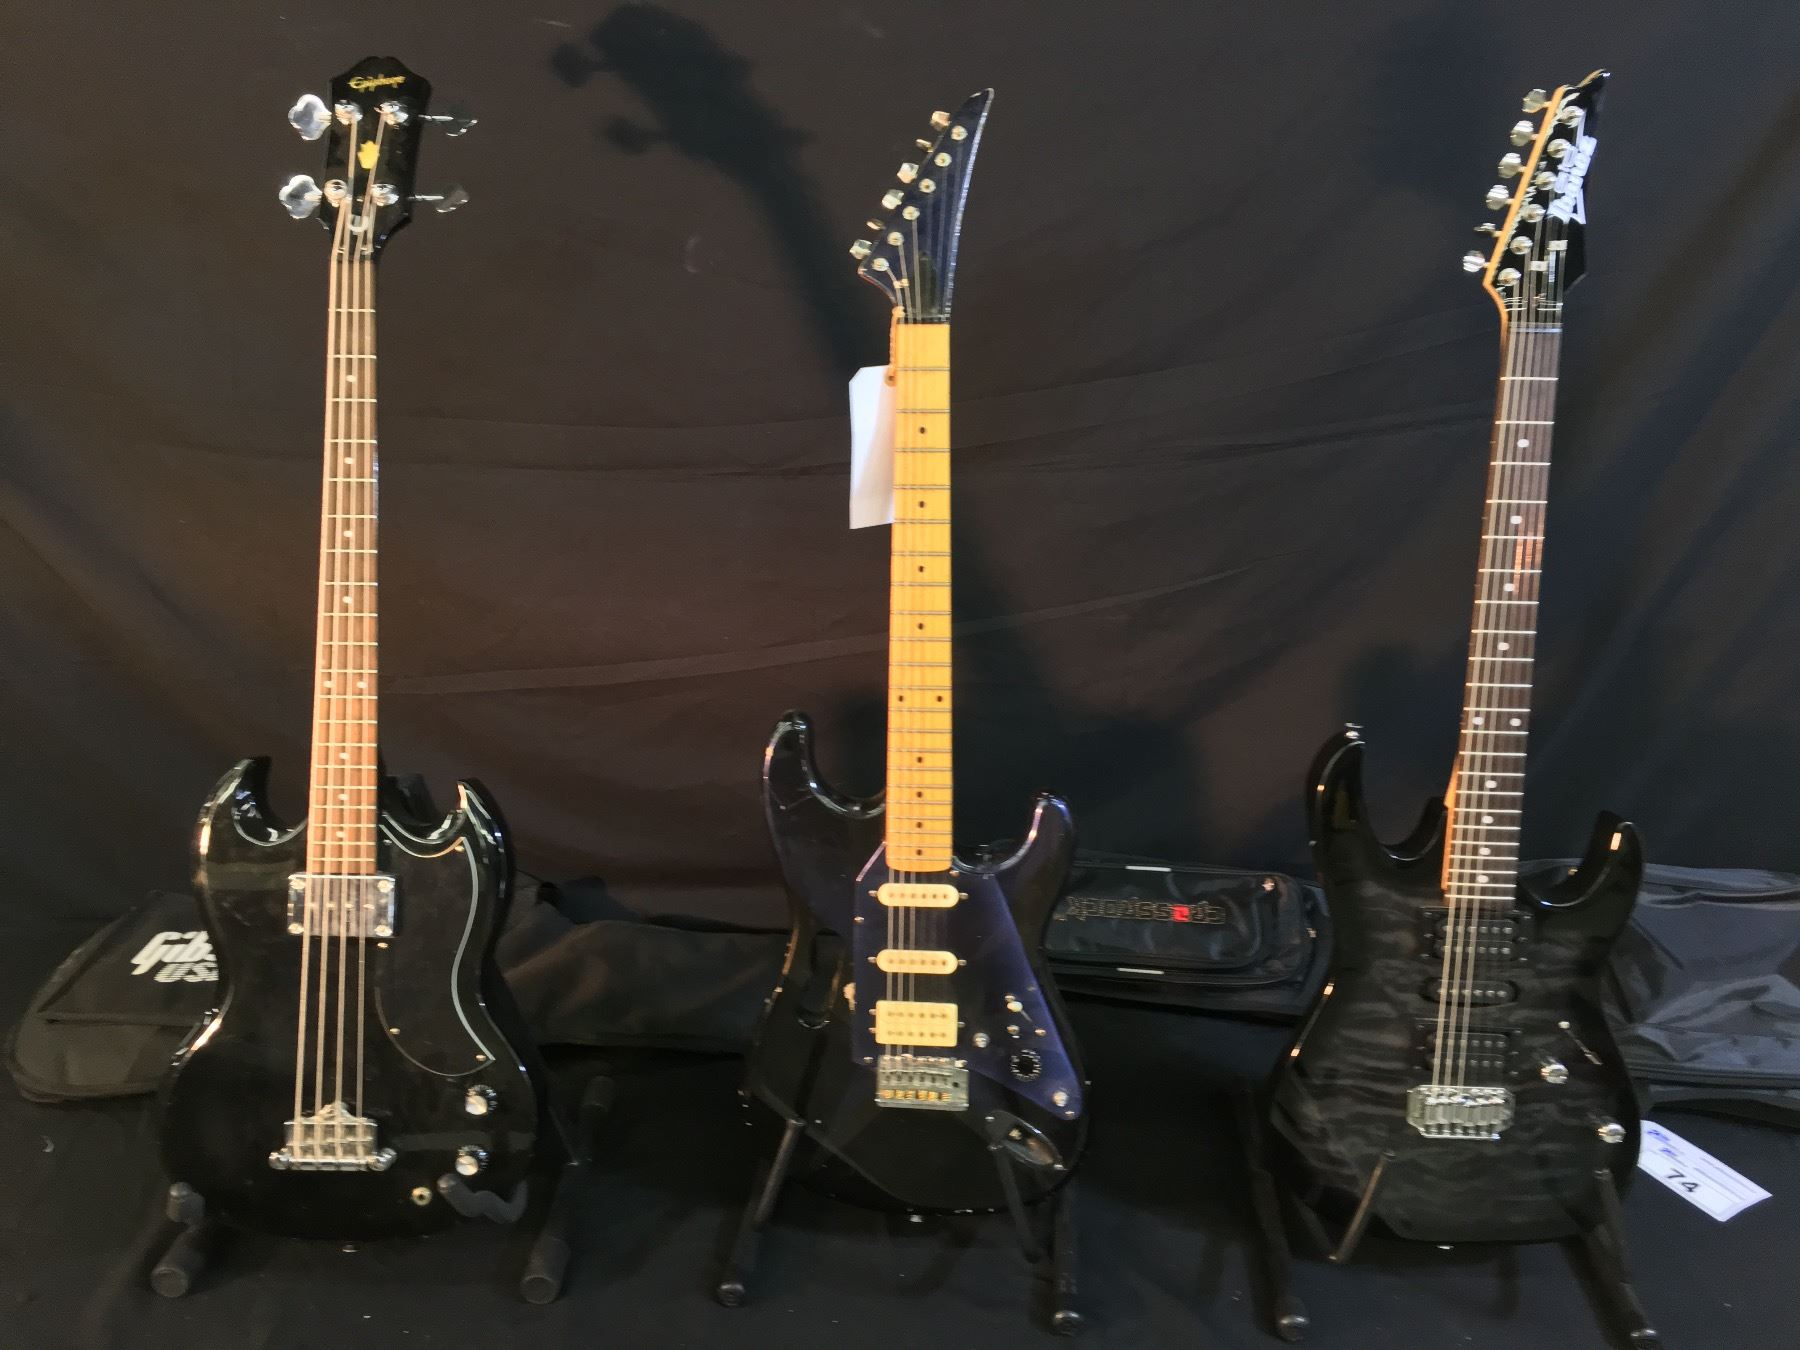 Fantastic Ibanez 3 Way Switch Wiring Big Ibanez 5 Way Switch Rectangular Car Alarm System Diagram Coil Tap Wiring Old 3 Pickup Les Paul Wiring Diagram GrayLes Paul 3 Pickup Wiring Diagram 3 GUITARS: IBANEZ GIO STRAT STYLE GUITAR WITH TWO HUMBUCKER ..